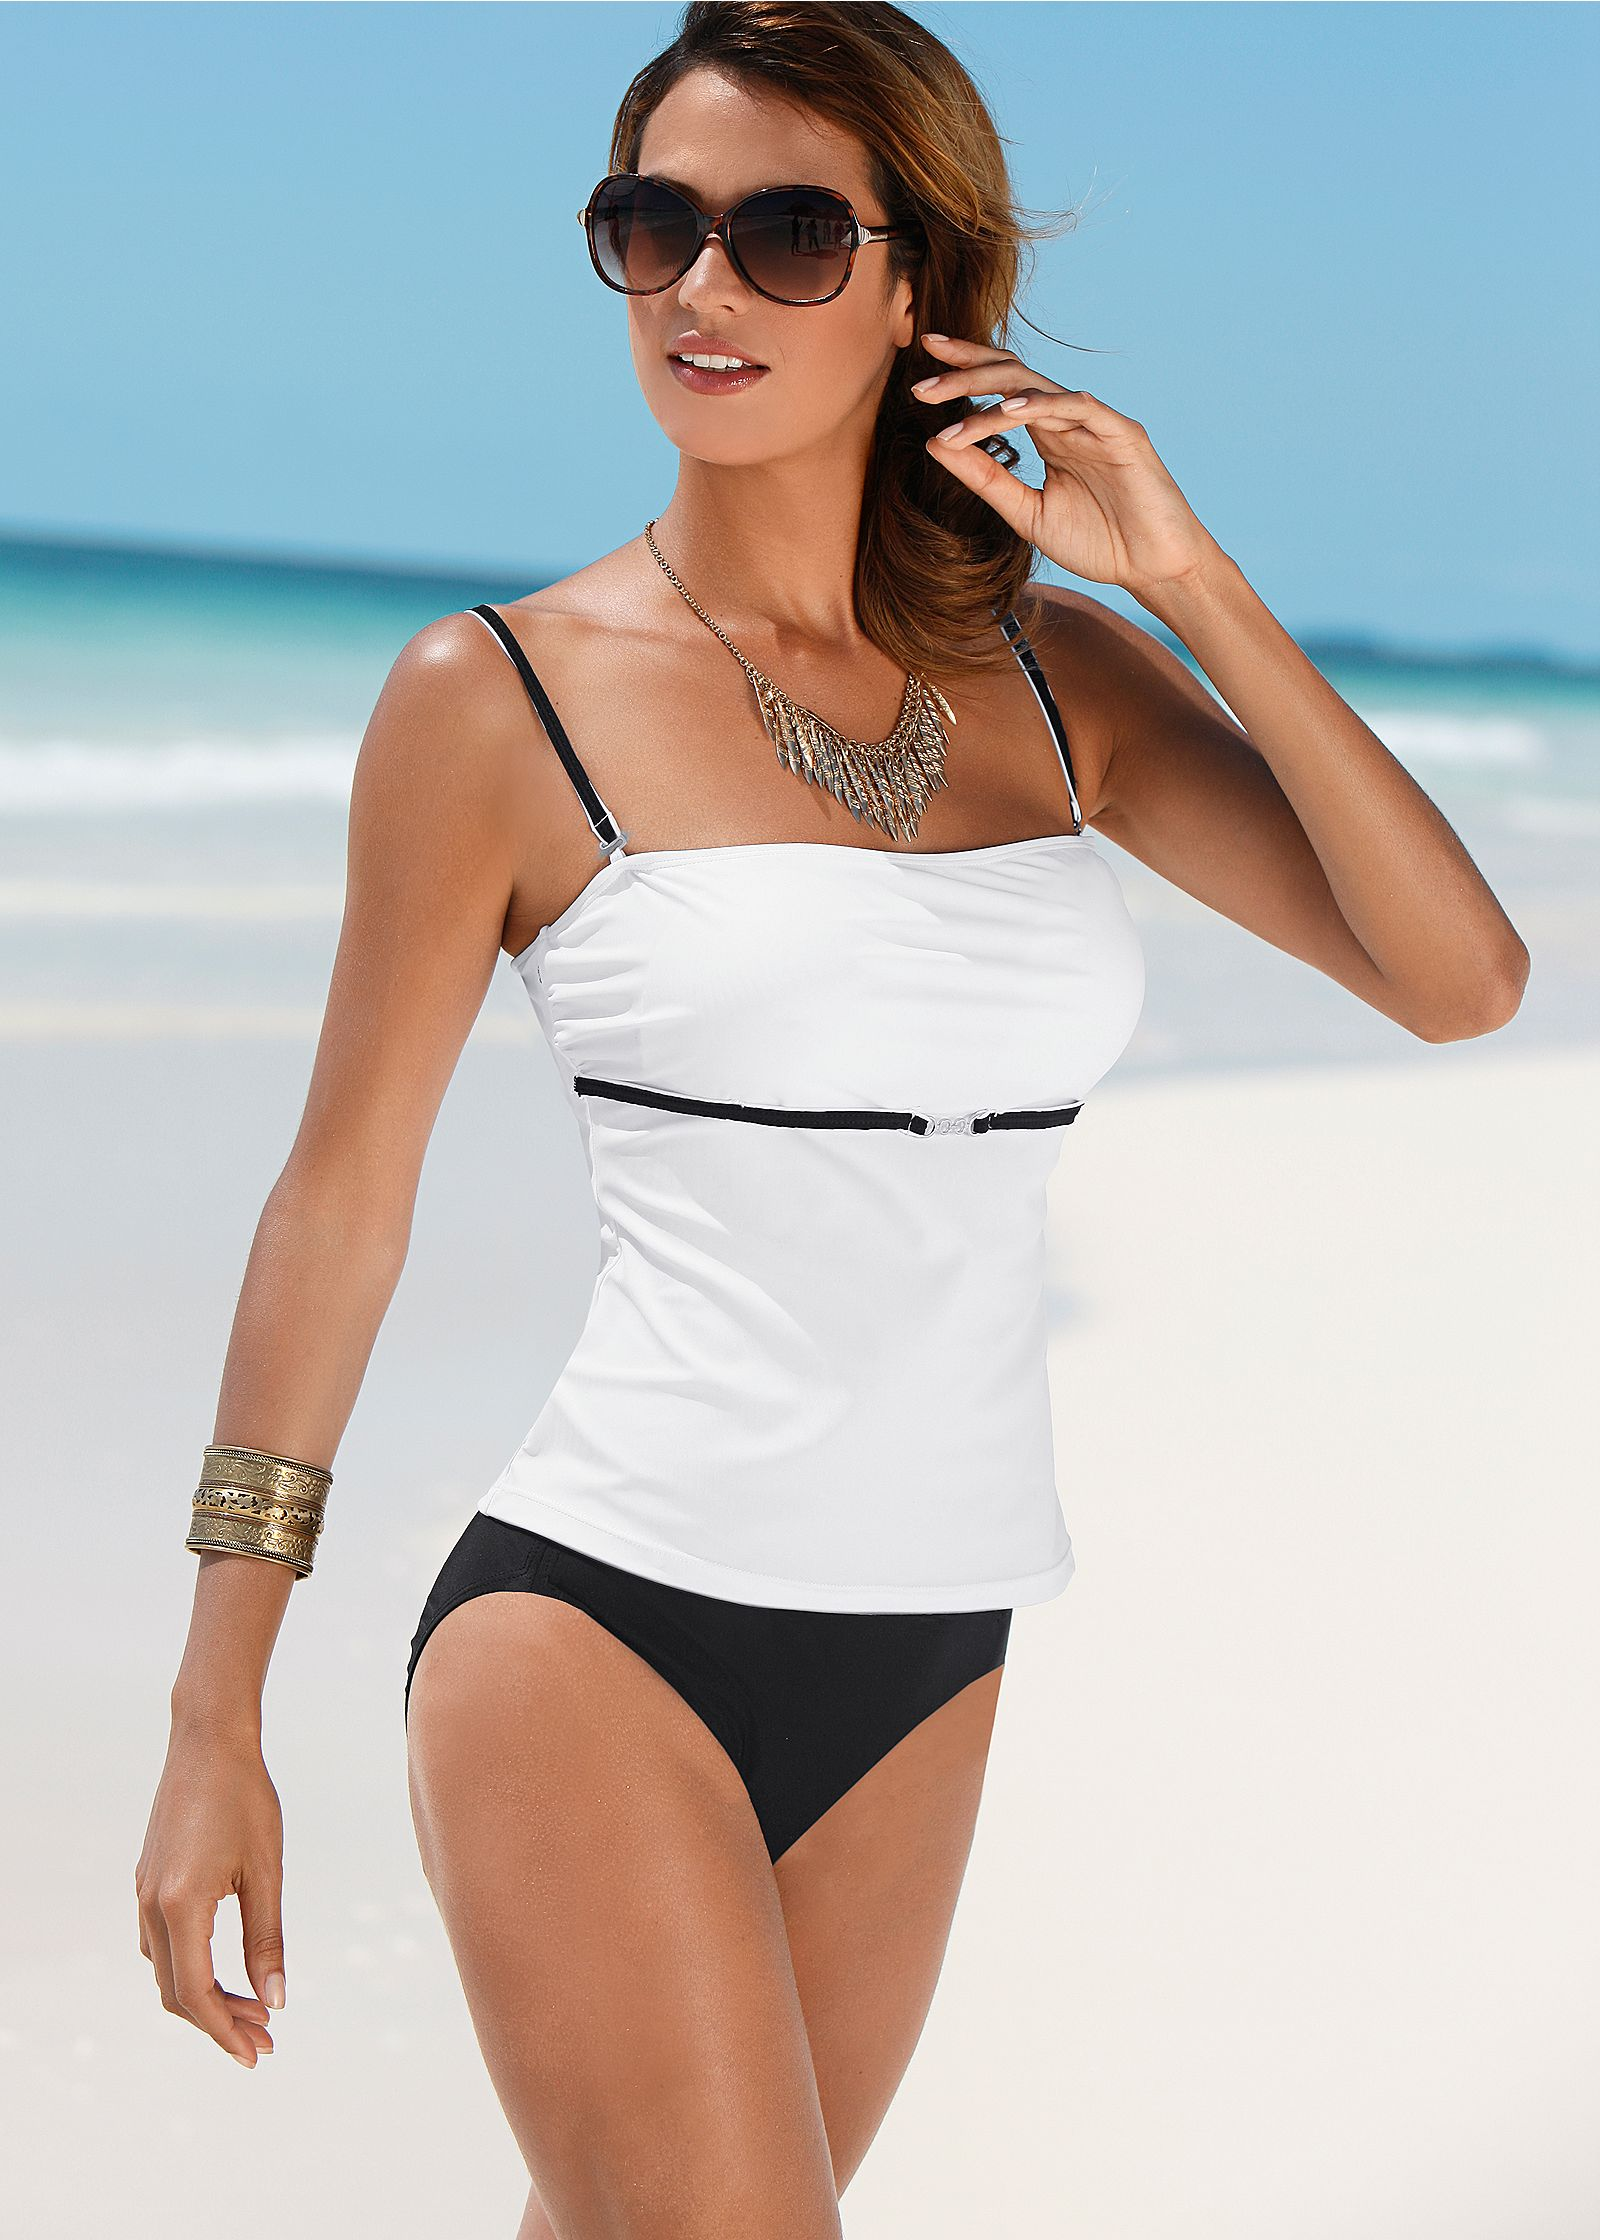 Trendy tankini trends for the summer